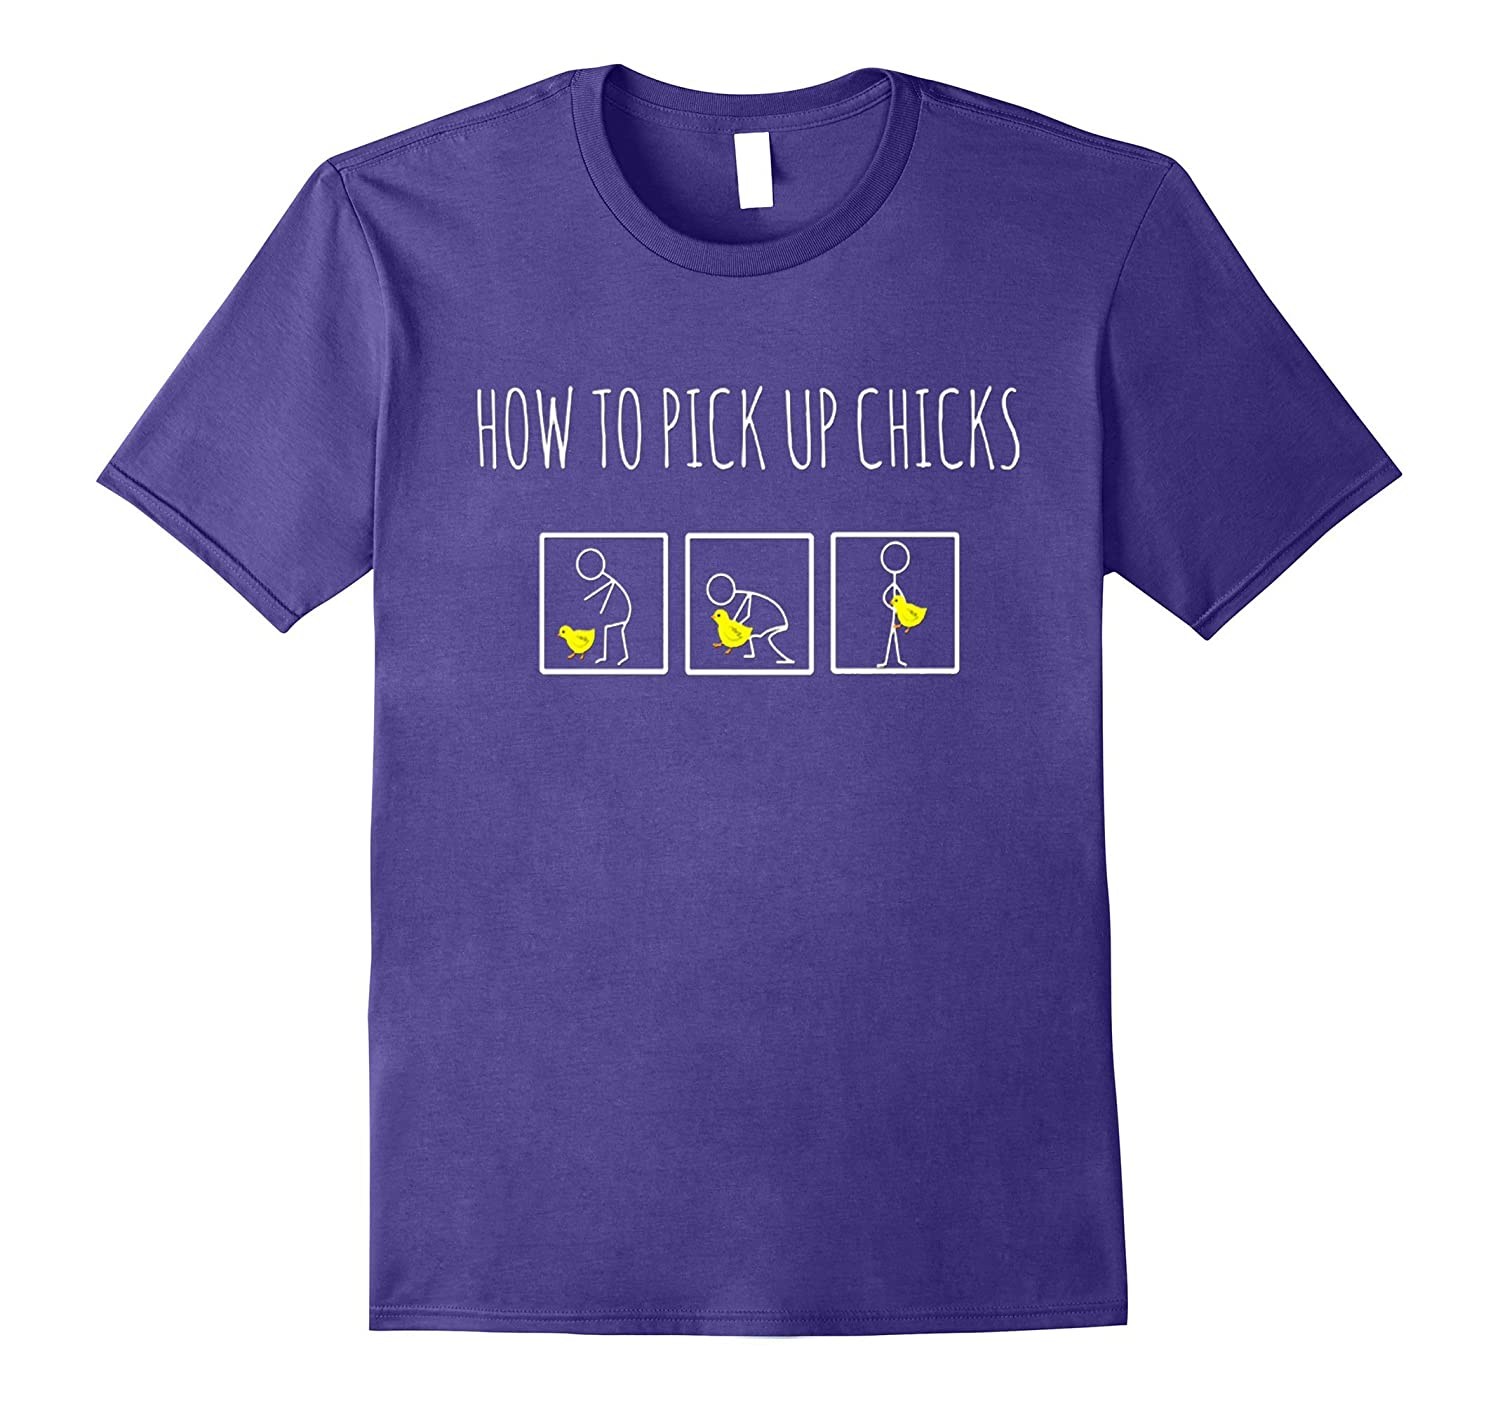 How To Pick Up Chicks Funny T-Shirt for Men or Women-BN